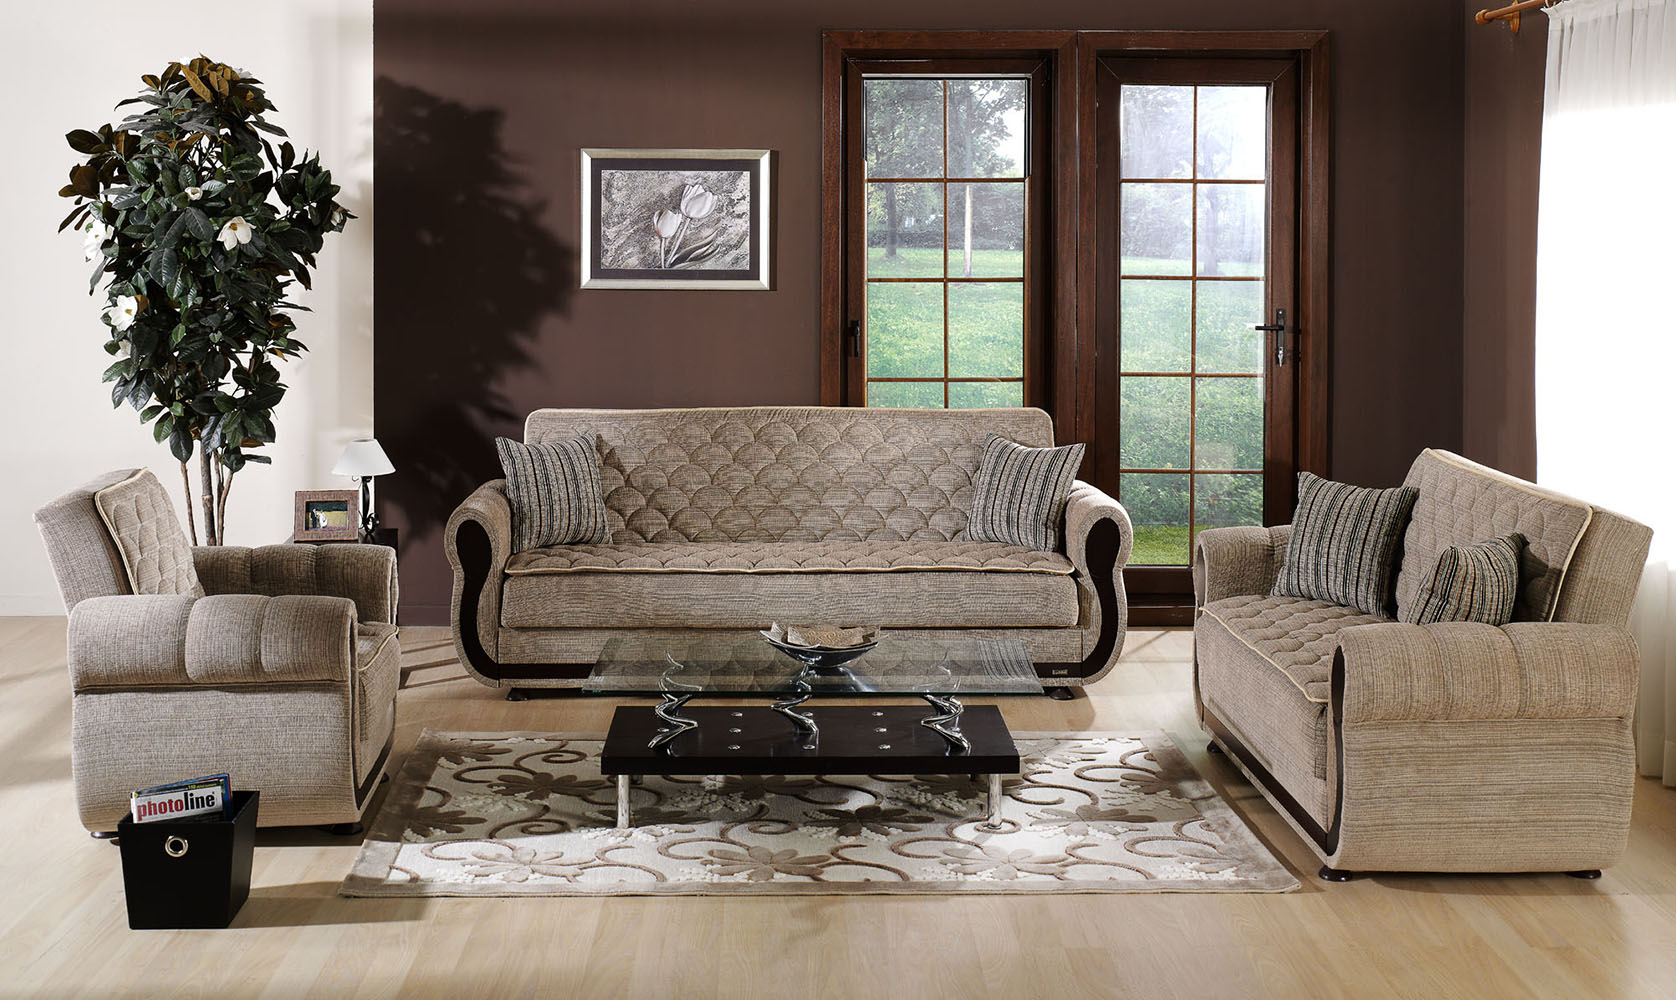 Argos Living Room Set in Zilkade Brown Fabric by Sunset